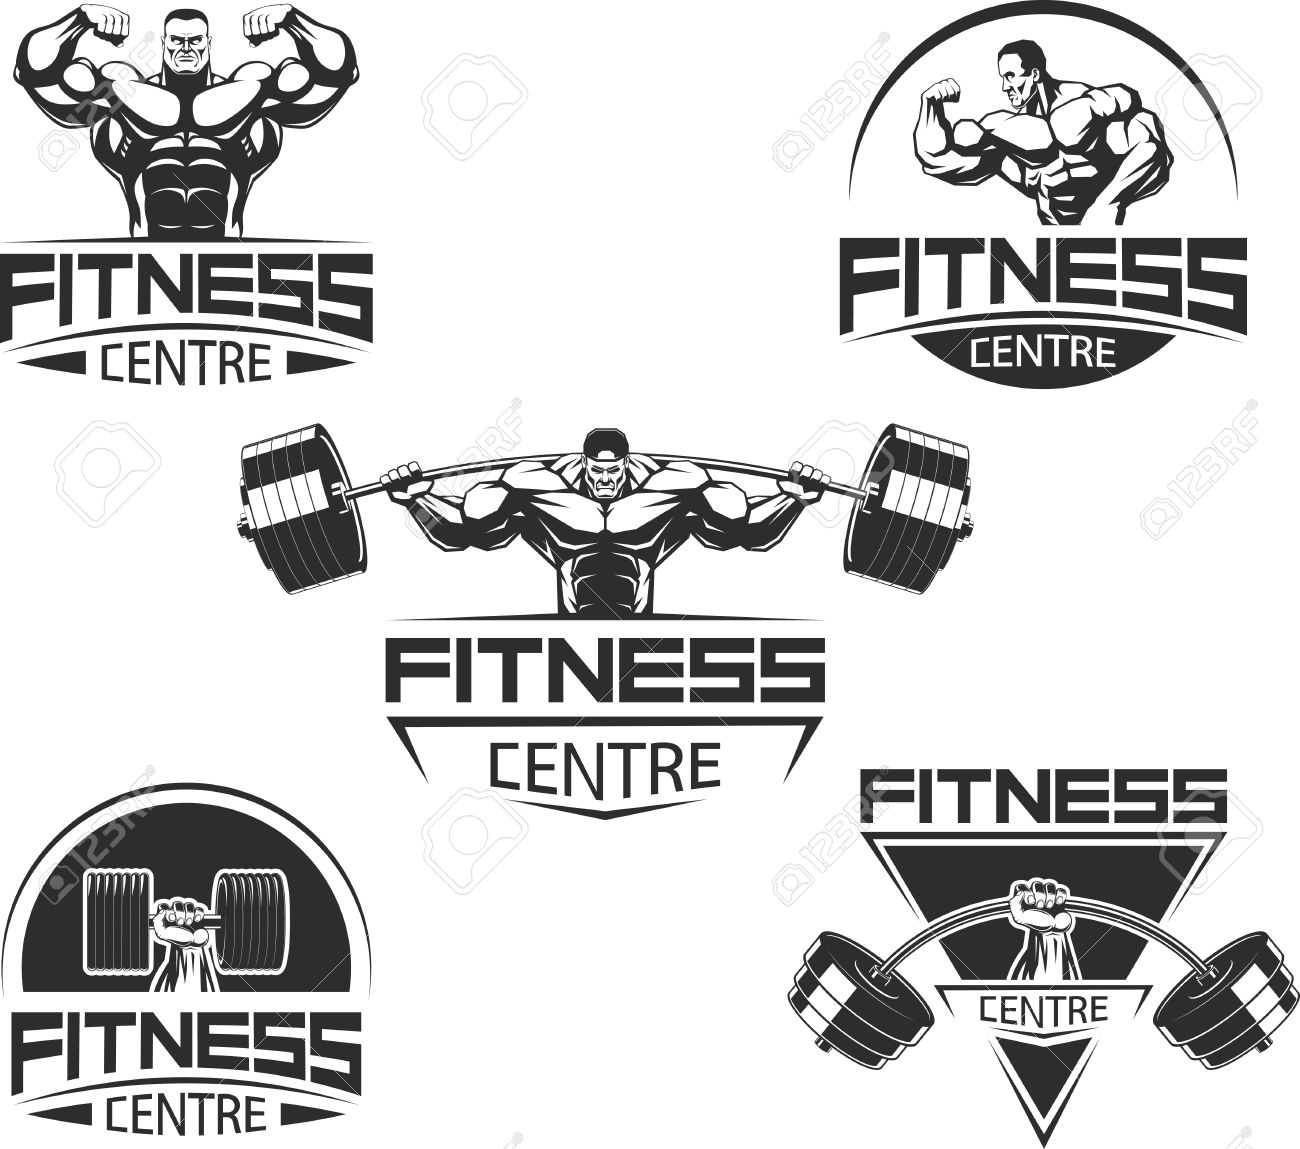 Vector illustration, Icons for bodybuilding and fitness - 51919480